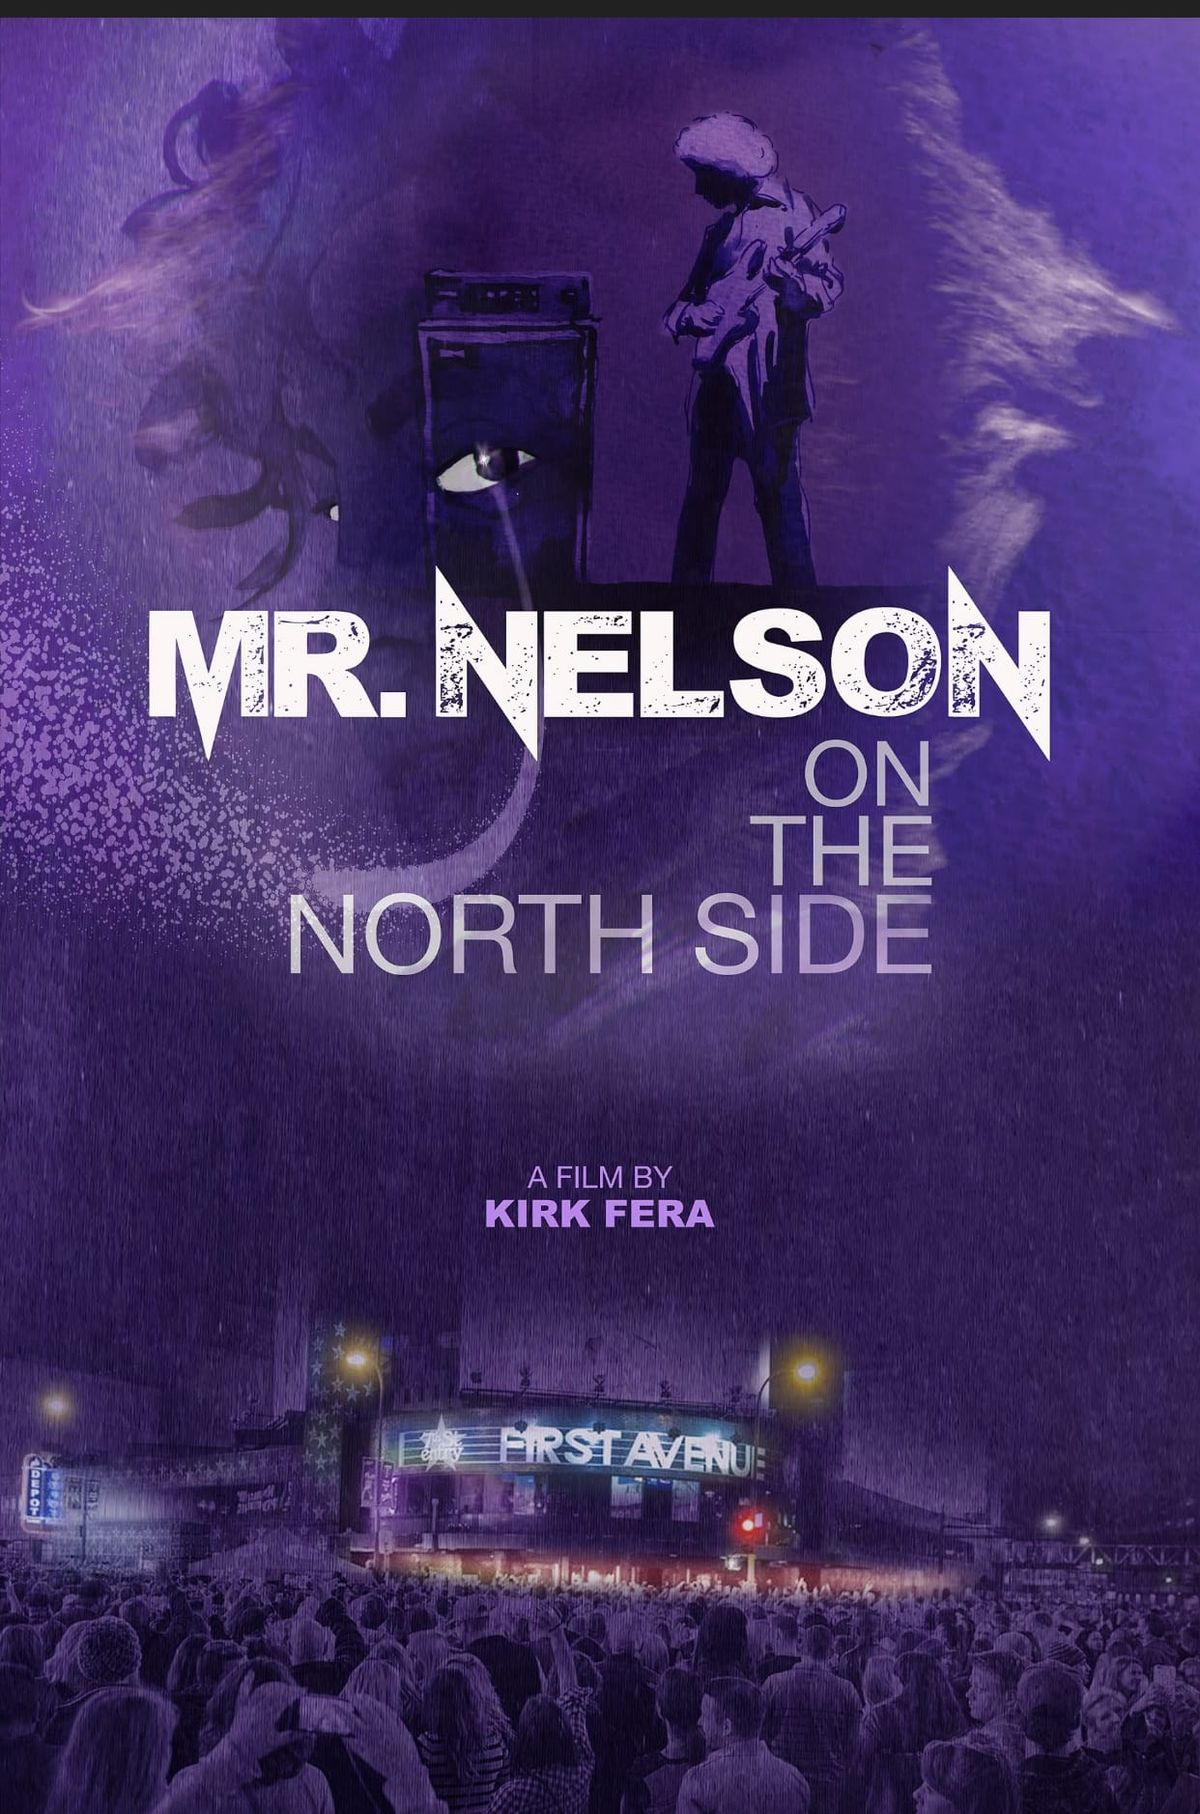 Mr. Nelson on the North Side